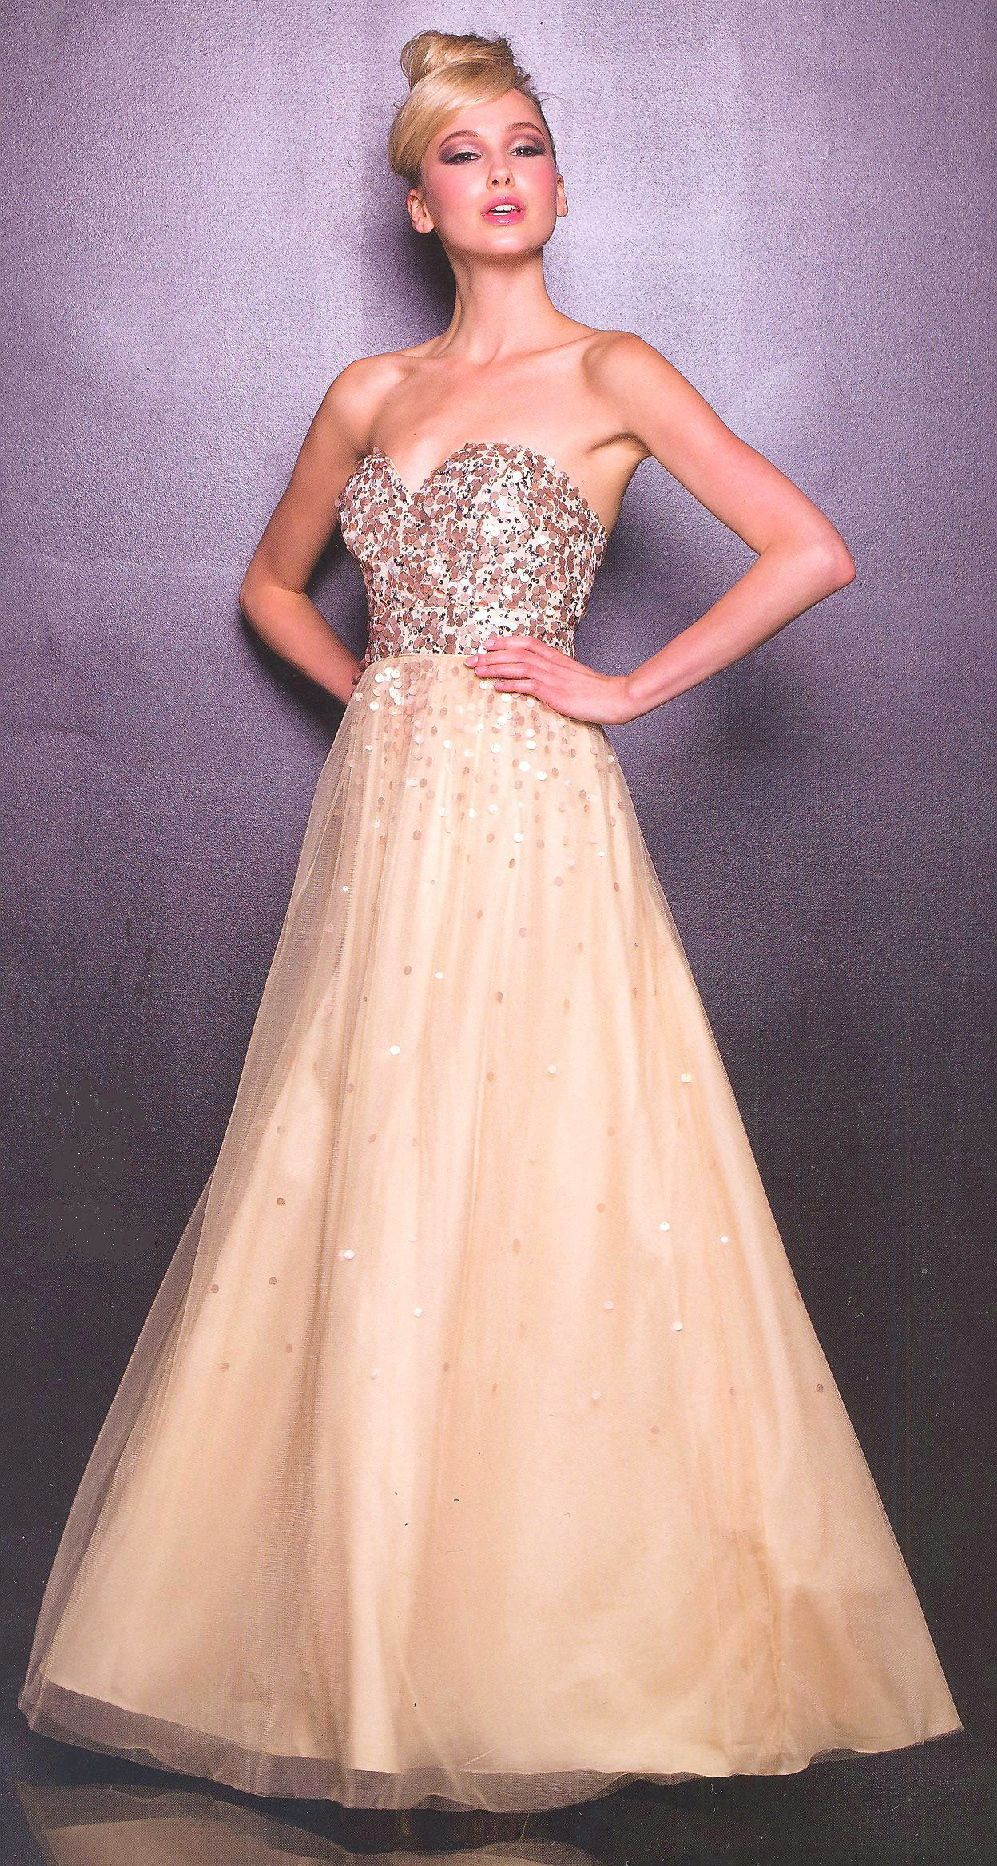 Prom dresswinter ball dress under red carpet ready ball